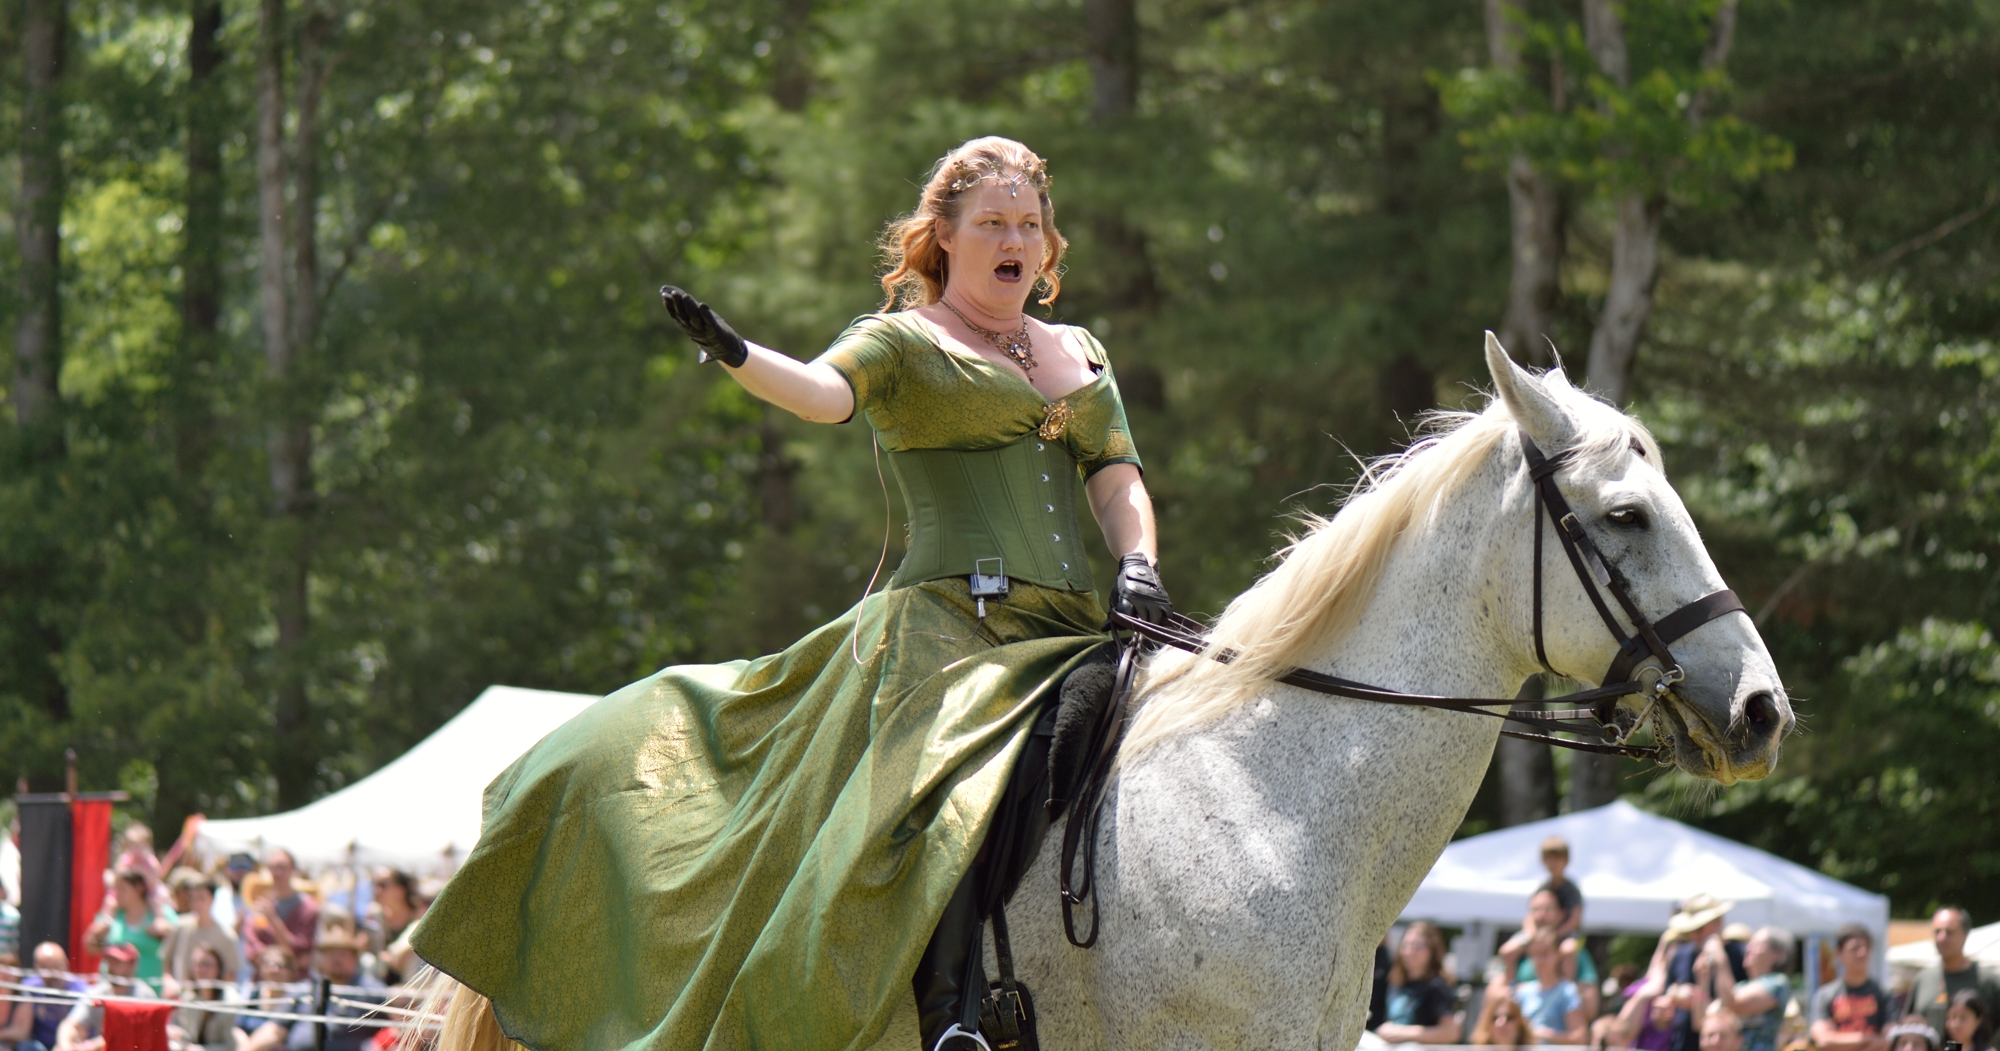 Oracle during a joust performance at a Renaissance Festival.